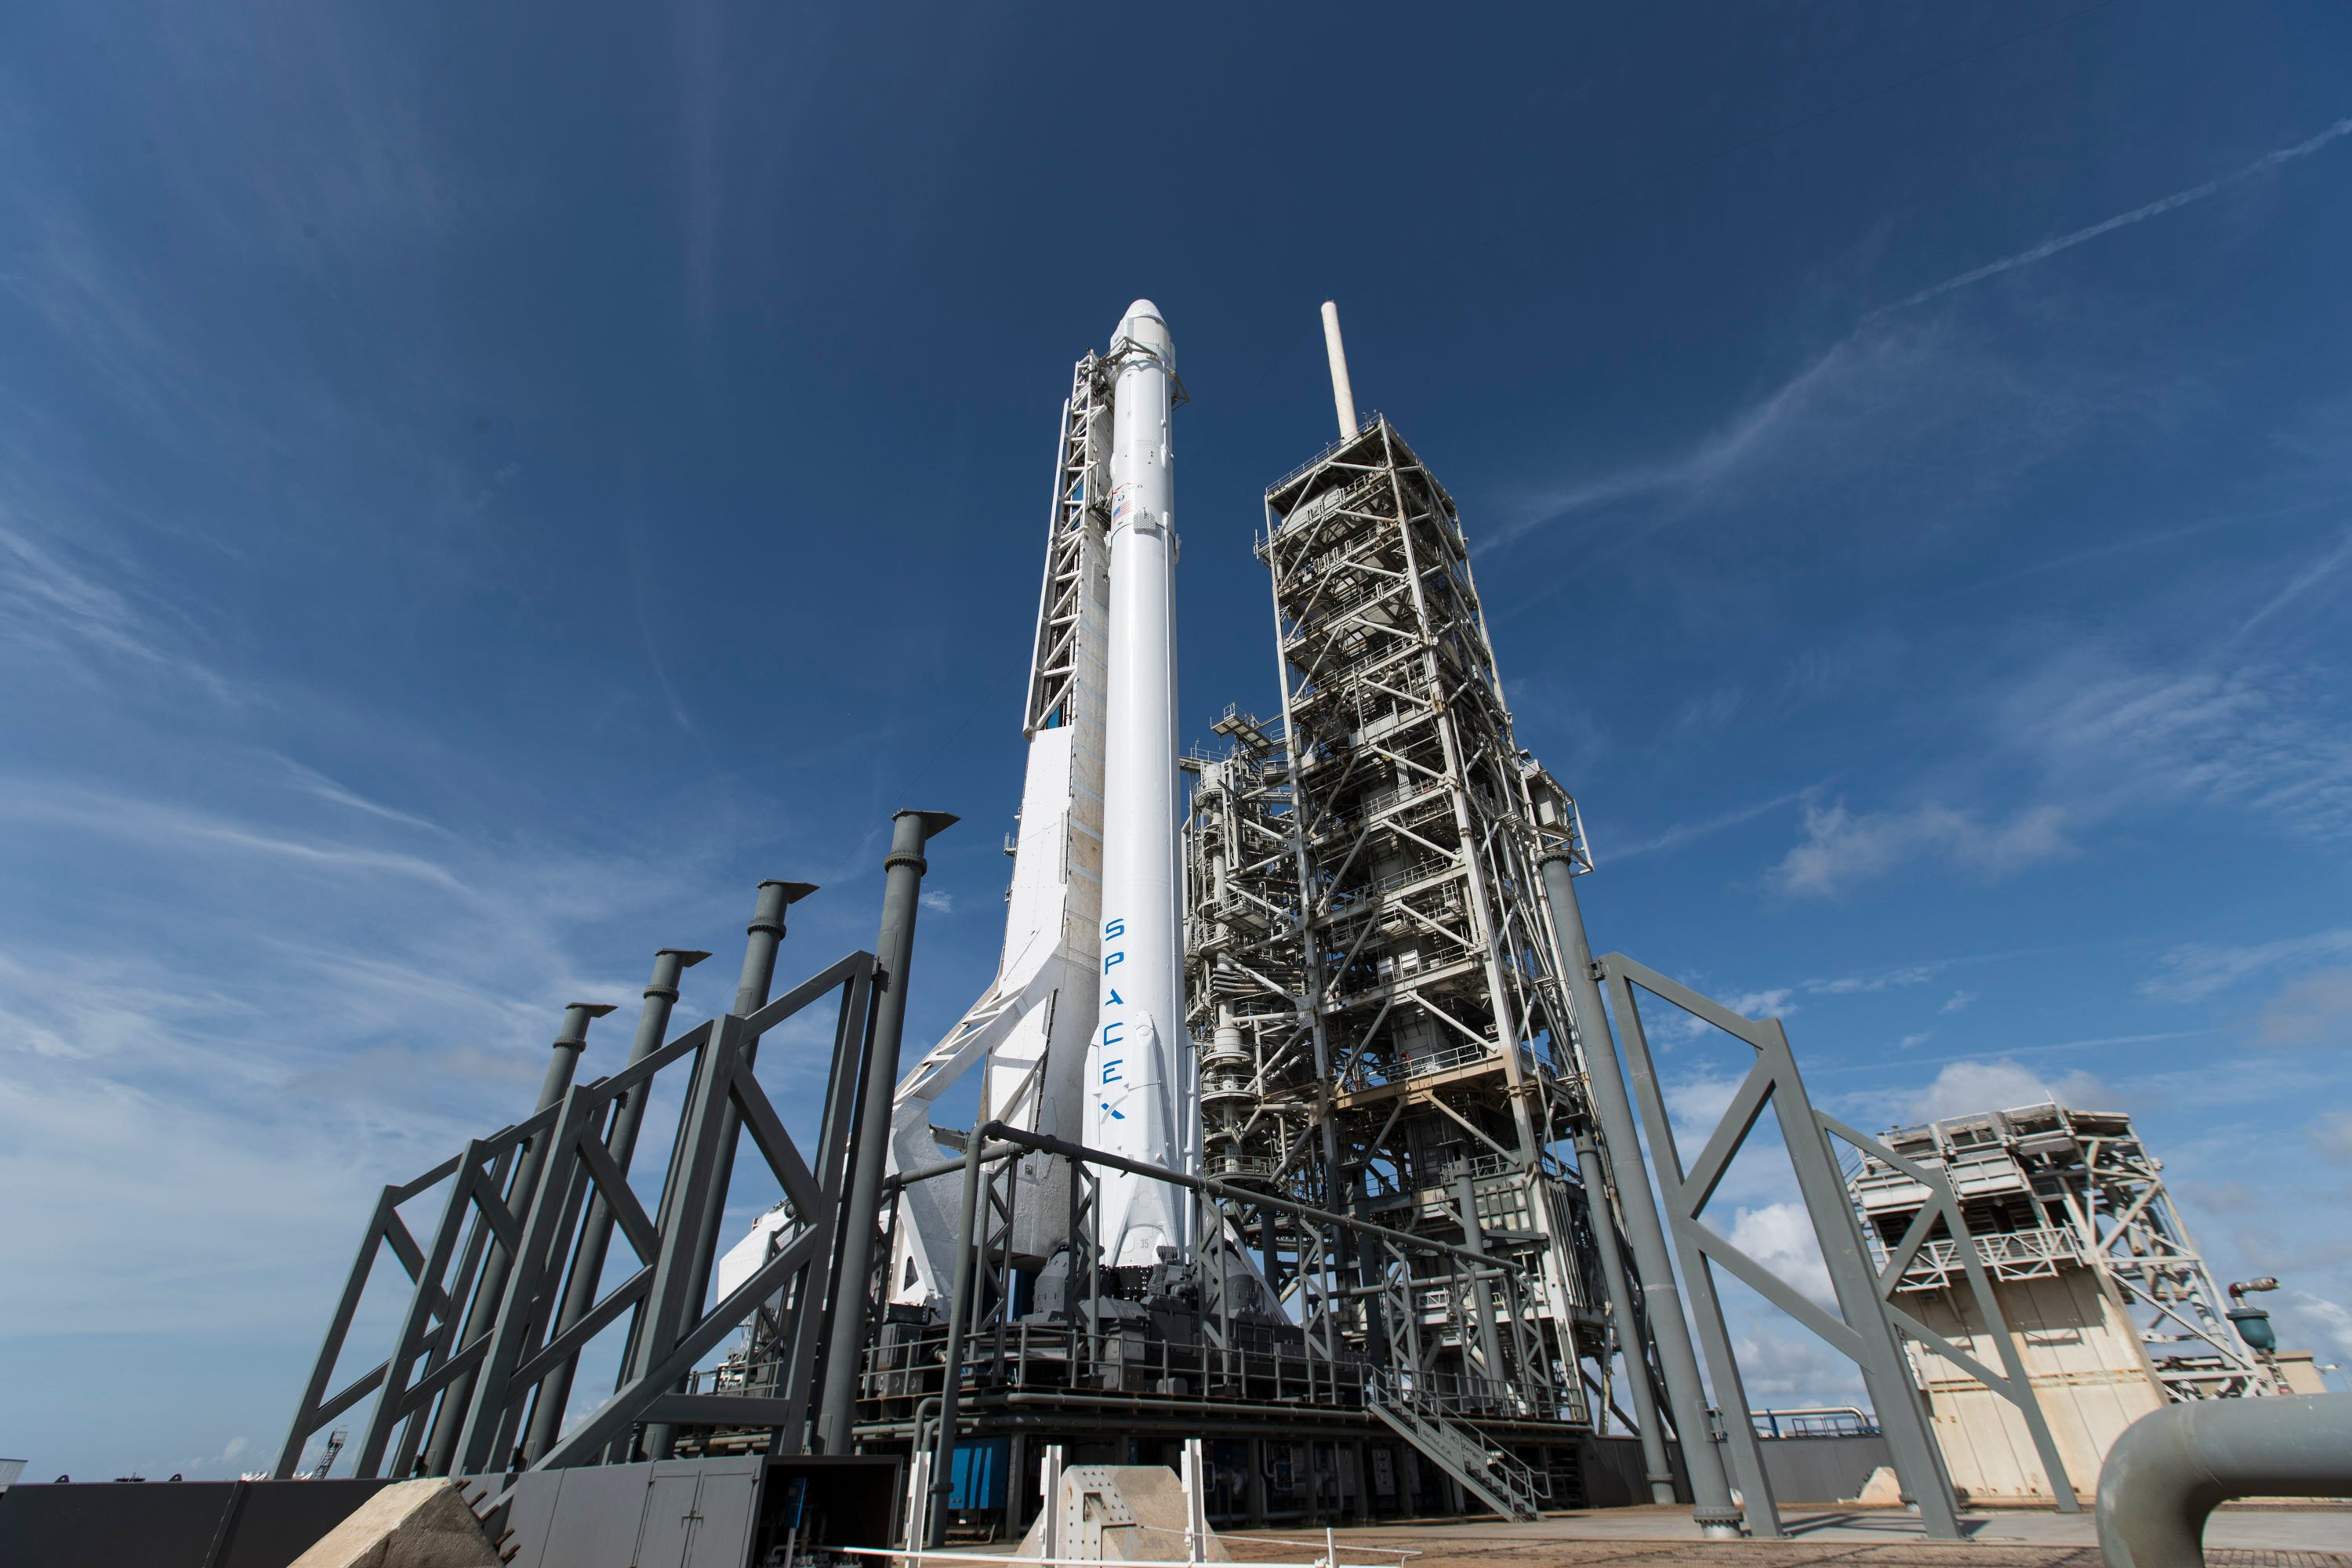 636319294325879159-34223076793-4abe7e74d6-o Updates: SpaceX Falcon 9 launches from KSC, lands at Cape